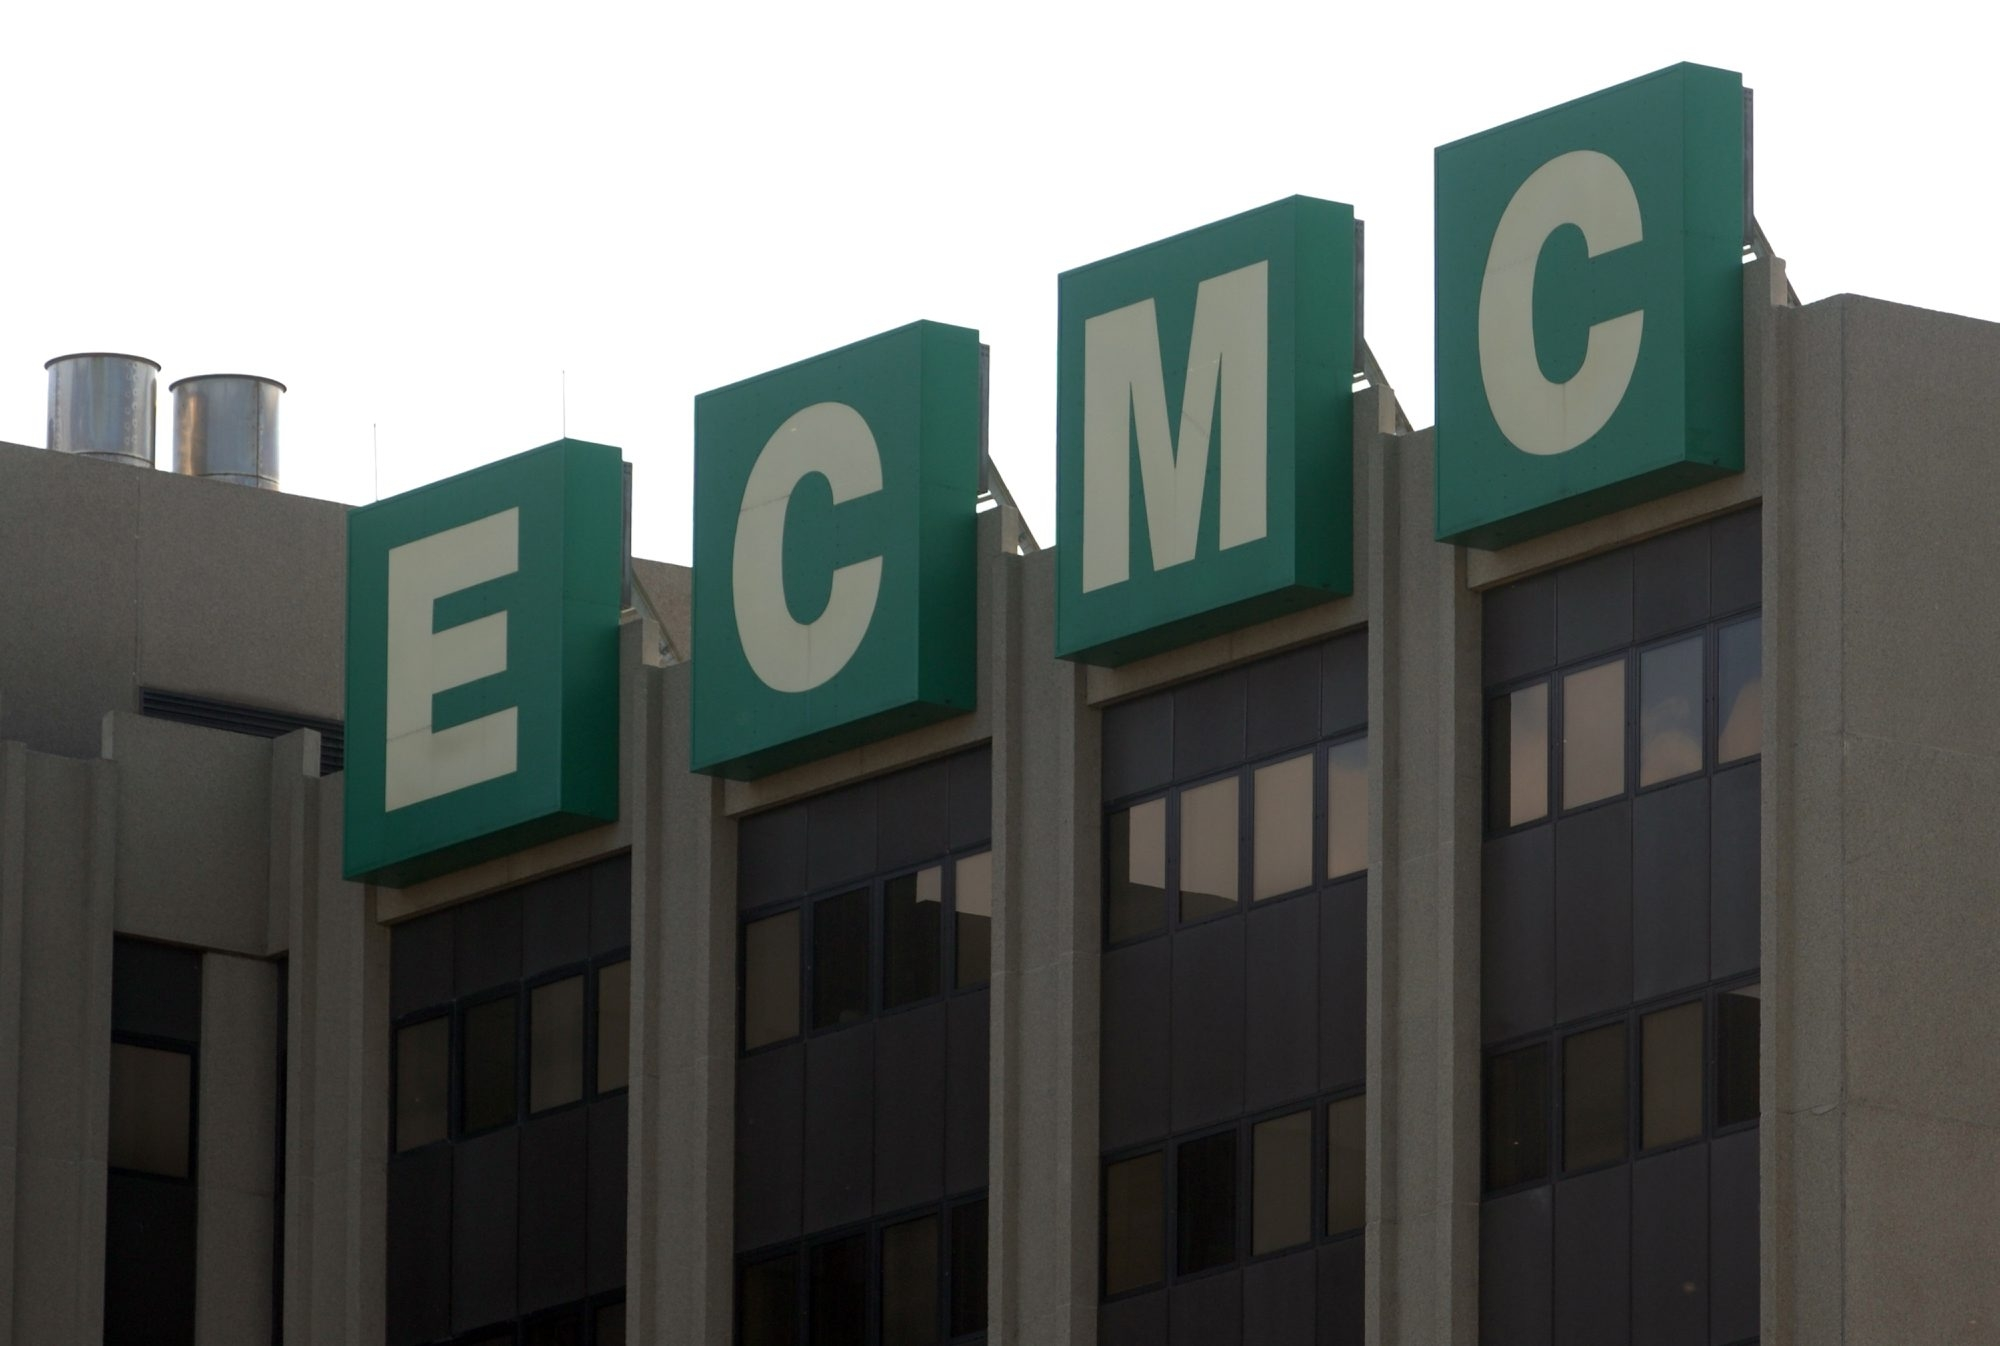 According to the data from the Centers for Medicare and Medicaid Services, ECMC receives the highest average payments locally forfive commonly performed procedures.